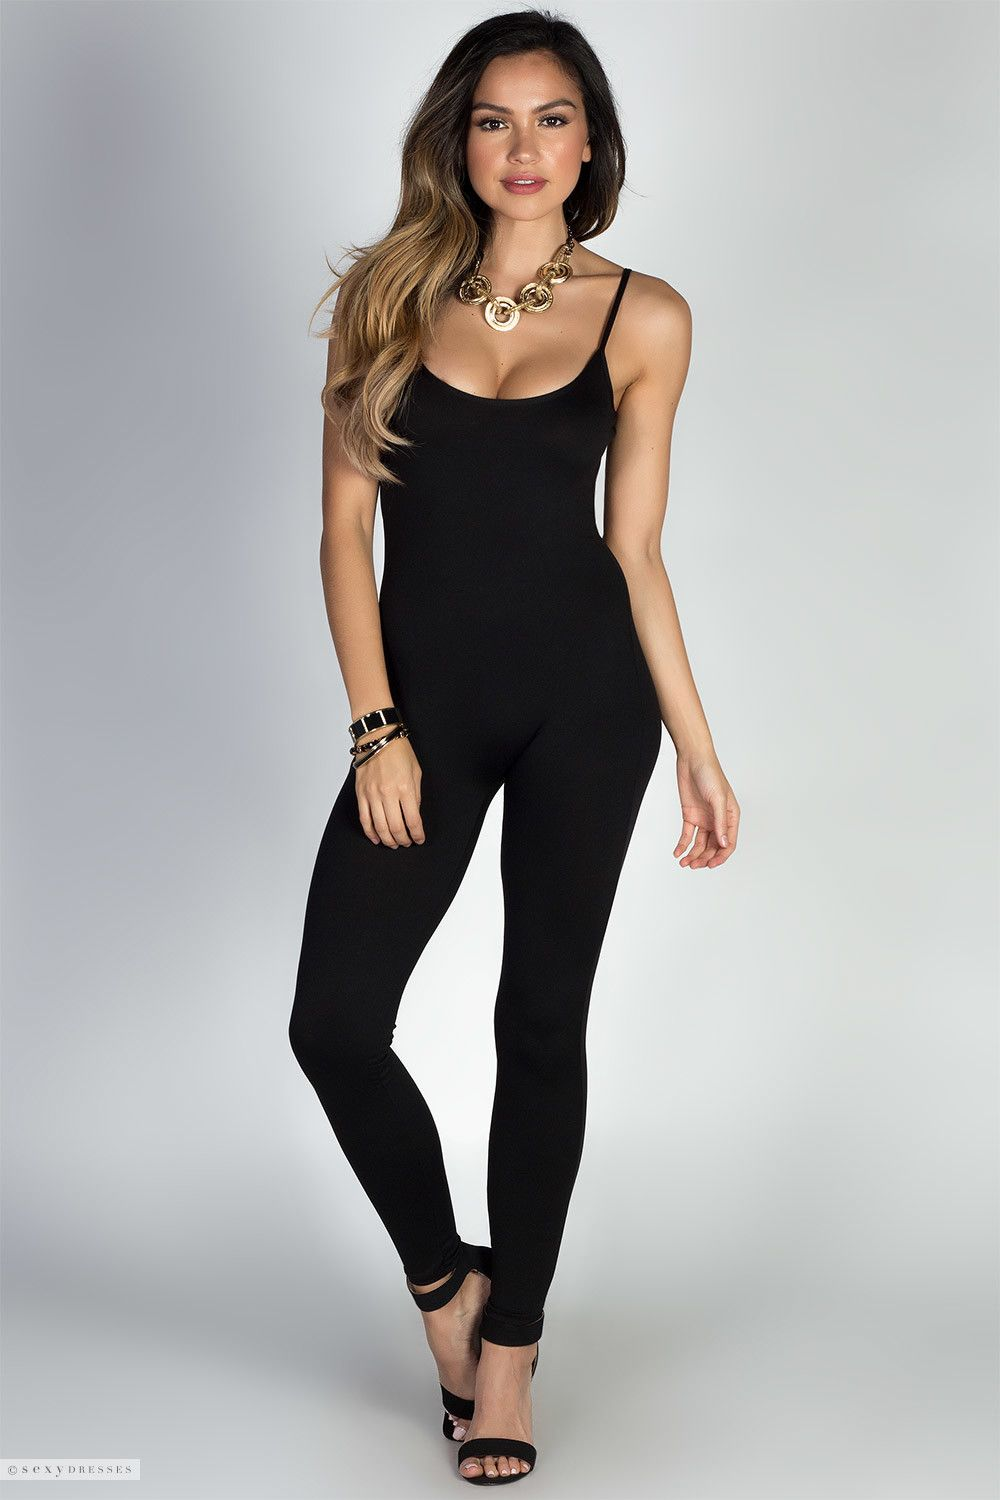 211b8b3a3ba9 Jersey Bodycon Scoop Neck Black Strappy Catsuit Bodysuit